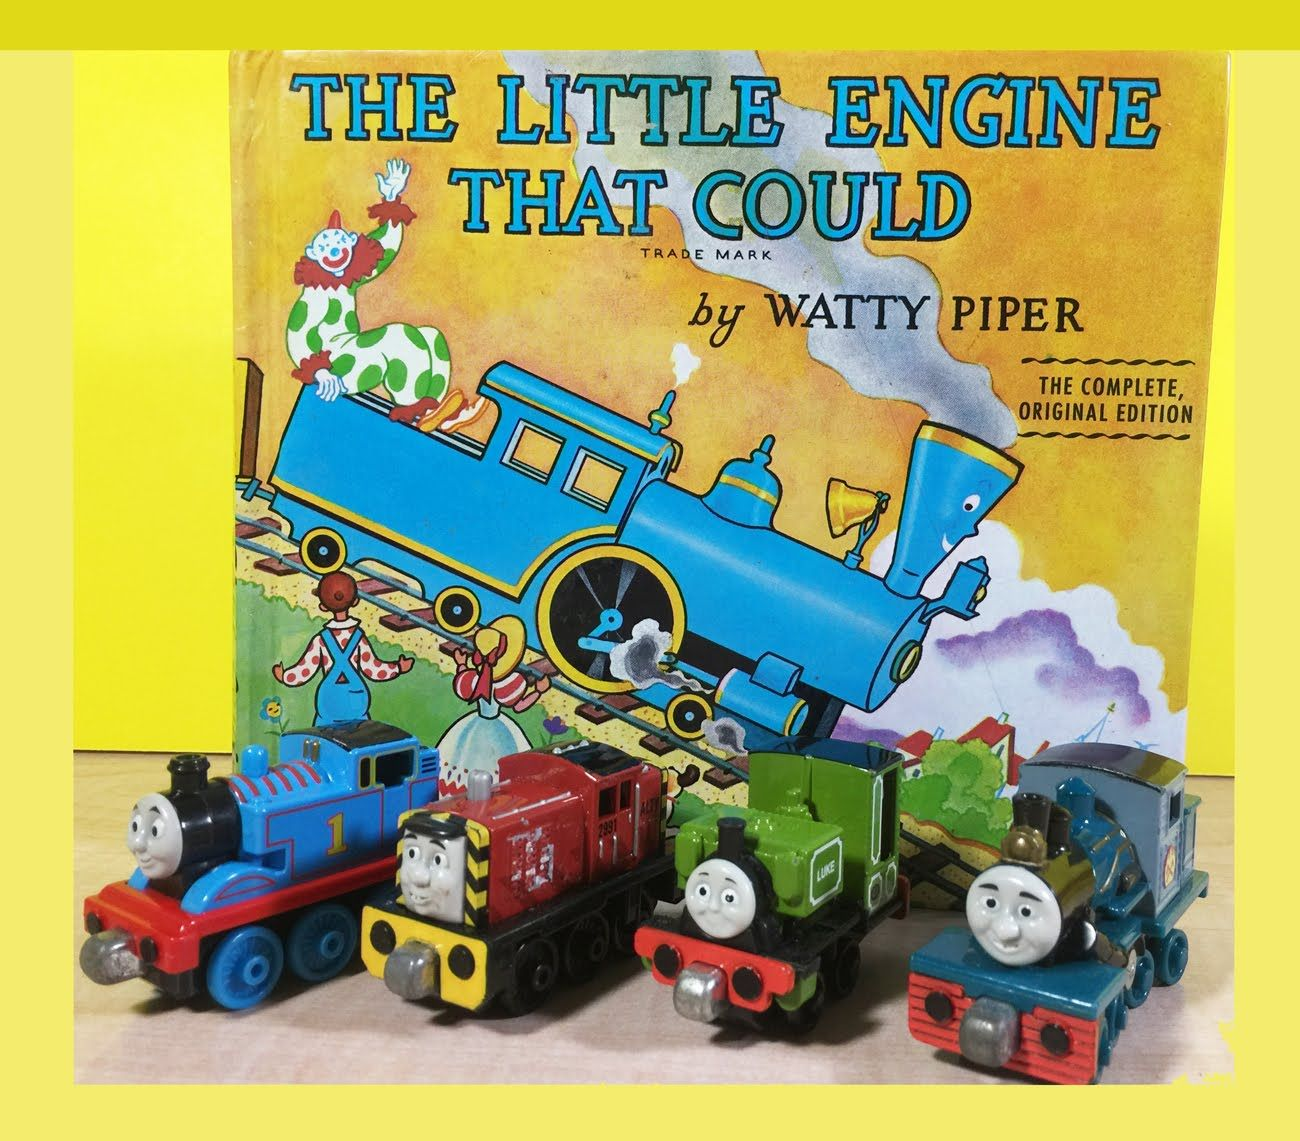 The Little Engine That Could With Steam Train Sounds